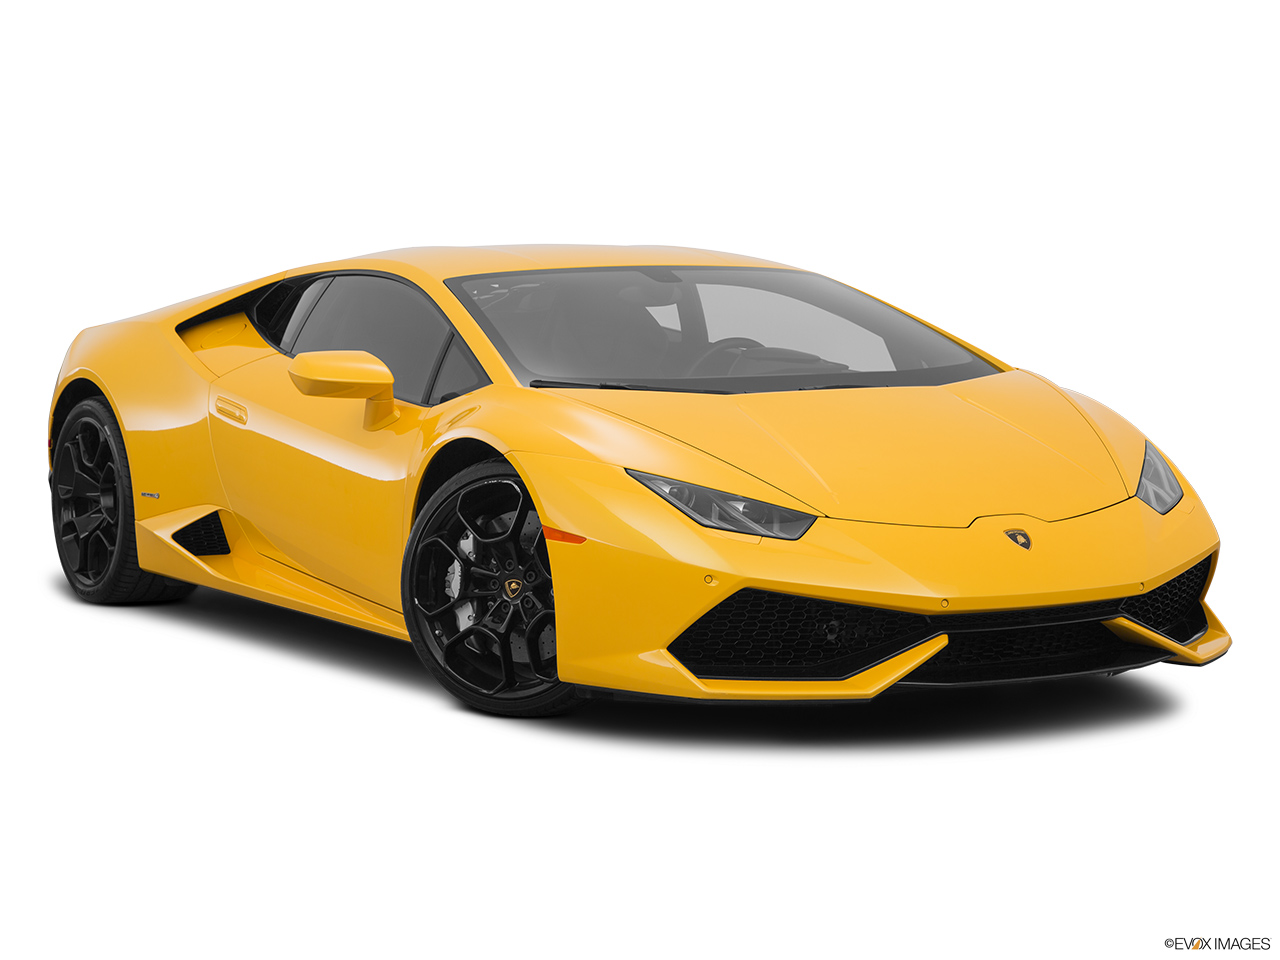 2015 Lamborghini Huracan LP 610-4 Front passenger 3/4 w/ wheels turned.